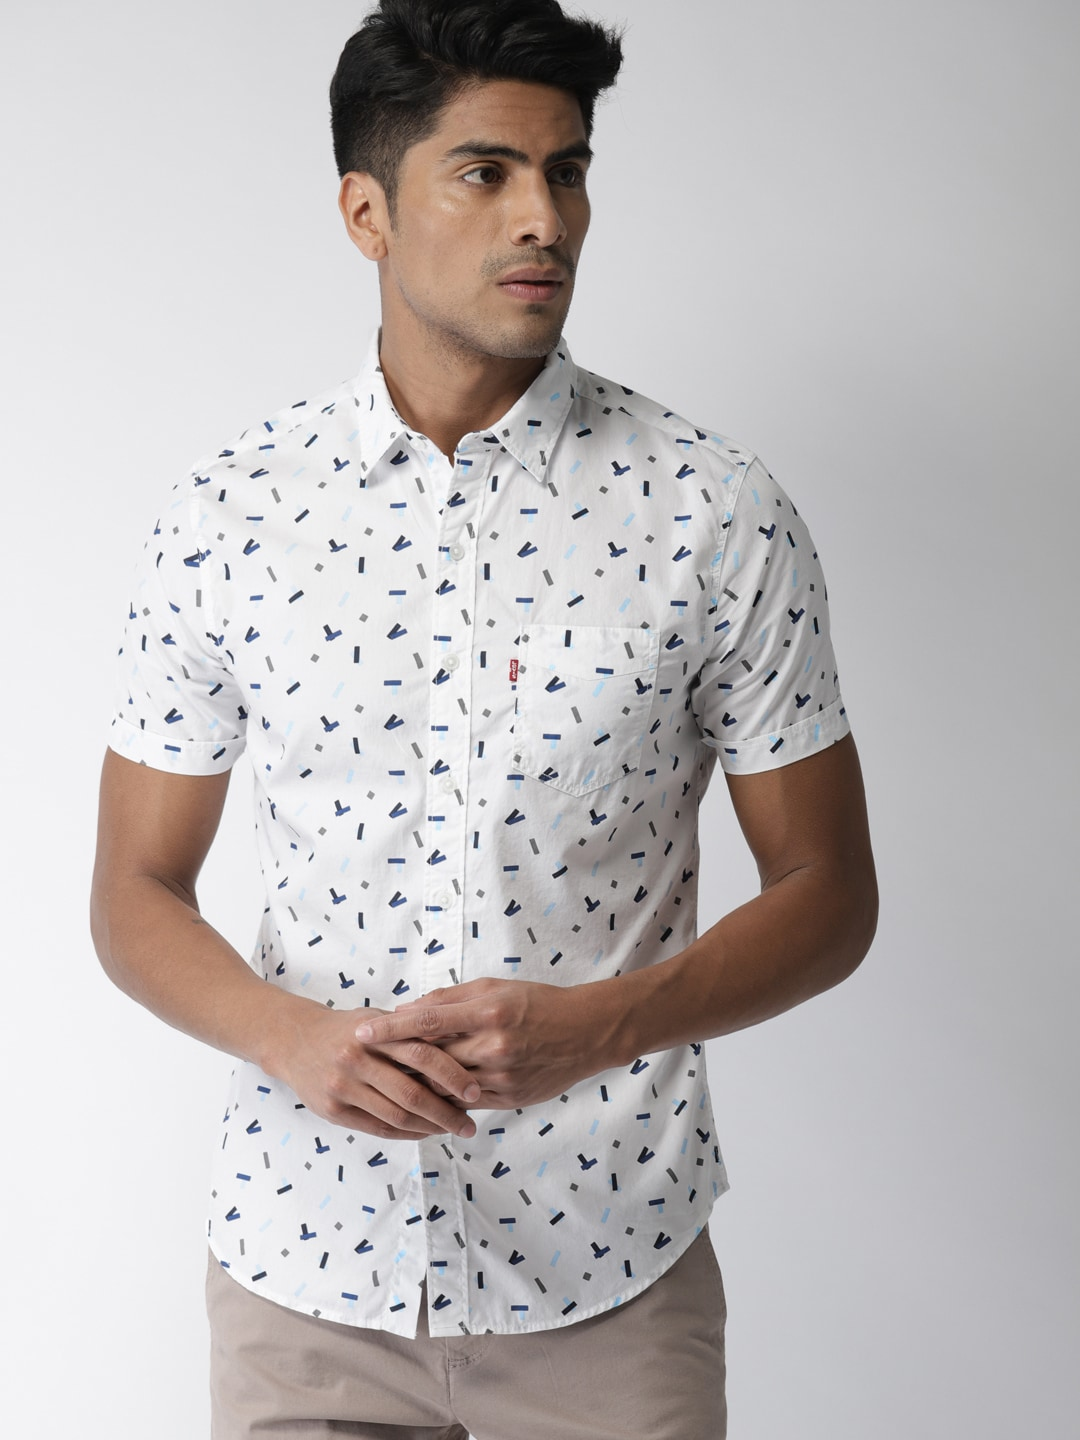 27f42d4c0bdad3 Levis Casual Shirts - Buy Levis Casual Shirts Online in India